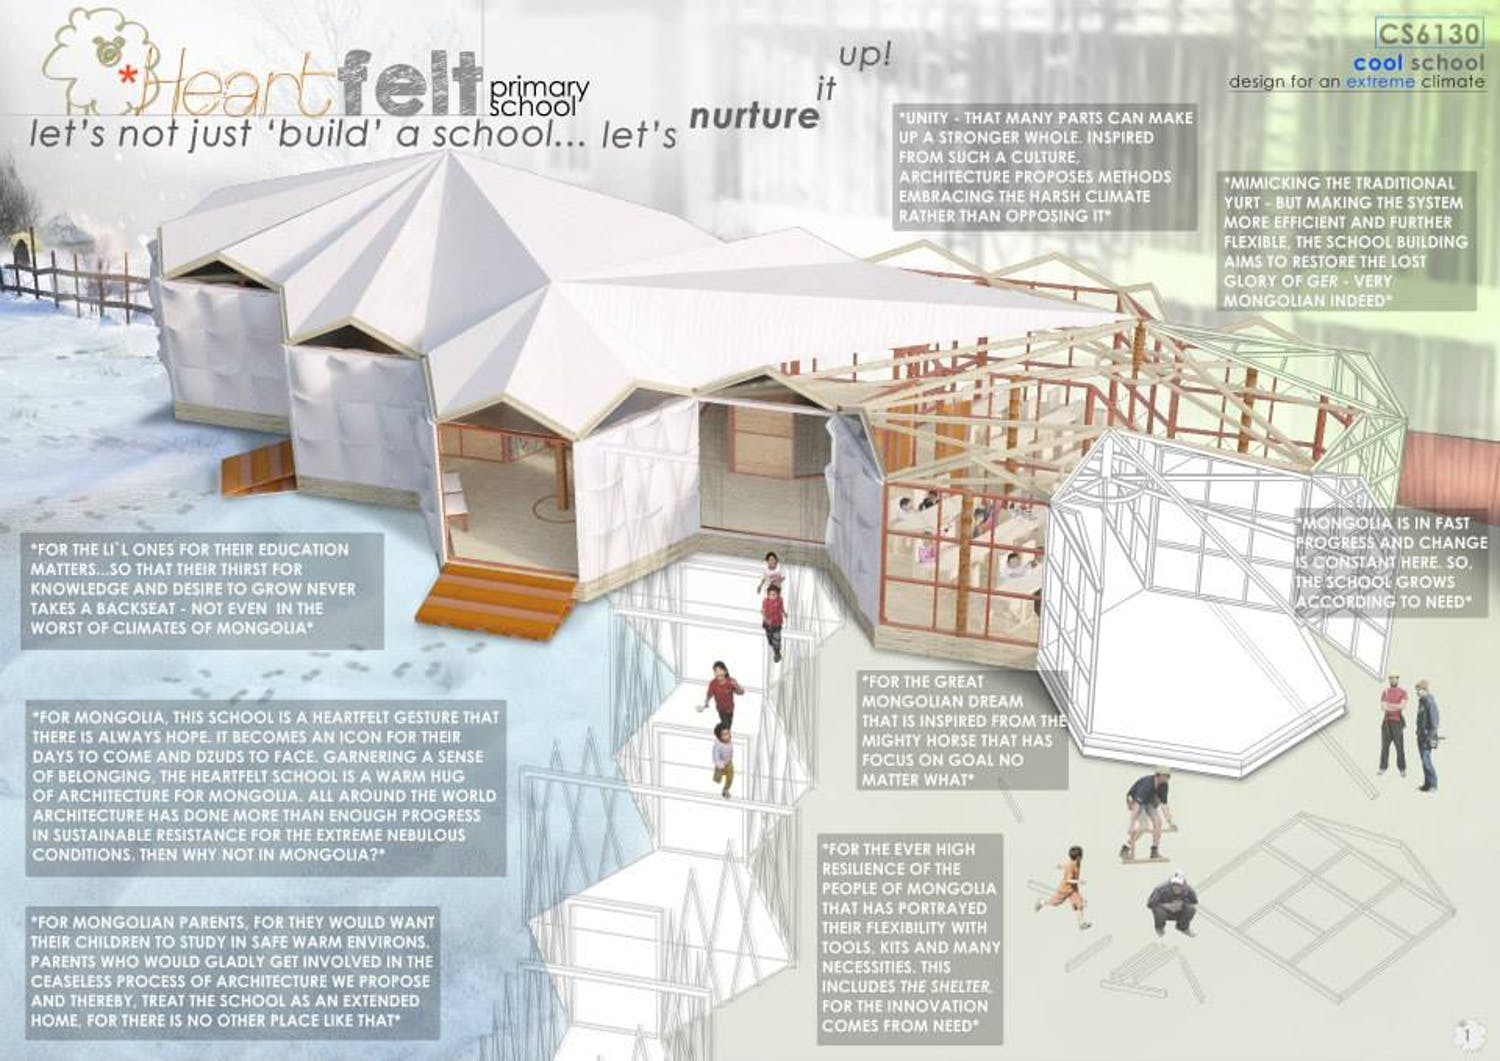 Cool School Design For An Extreme Climate